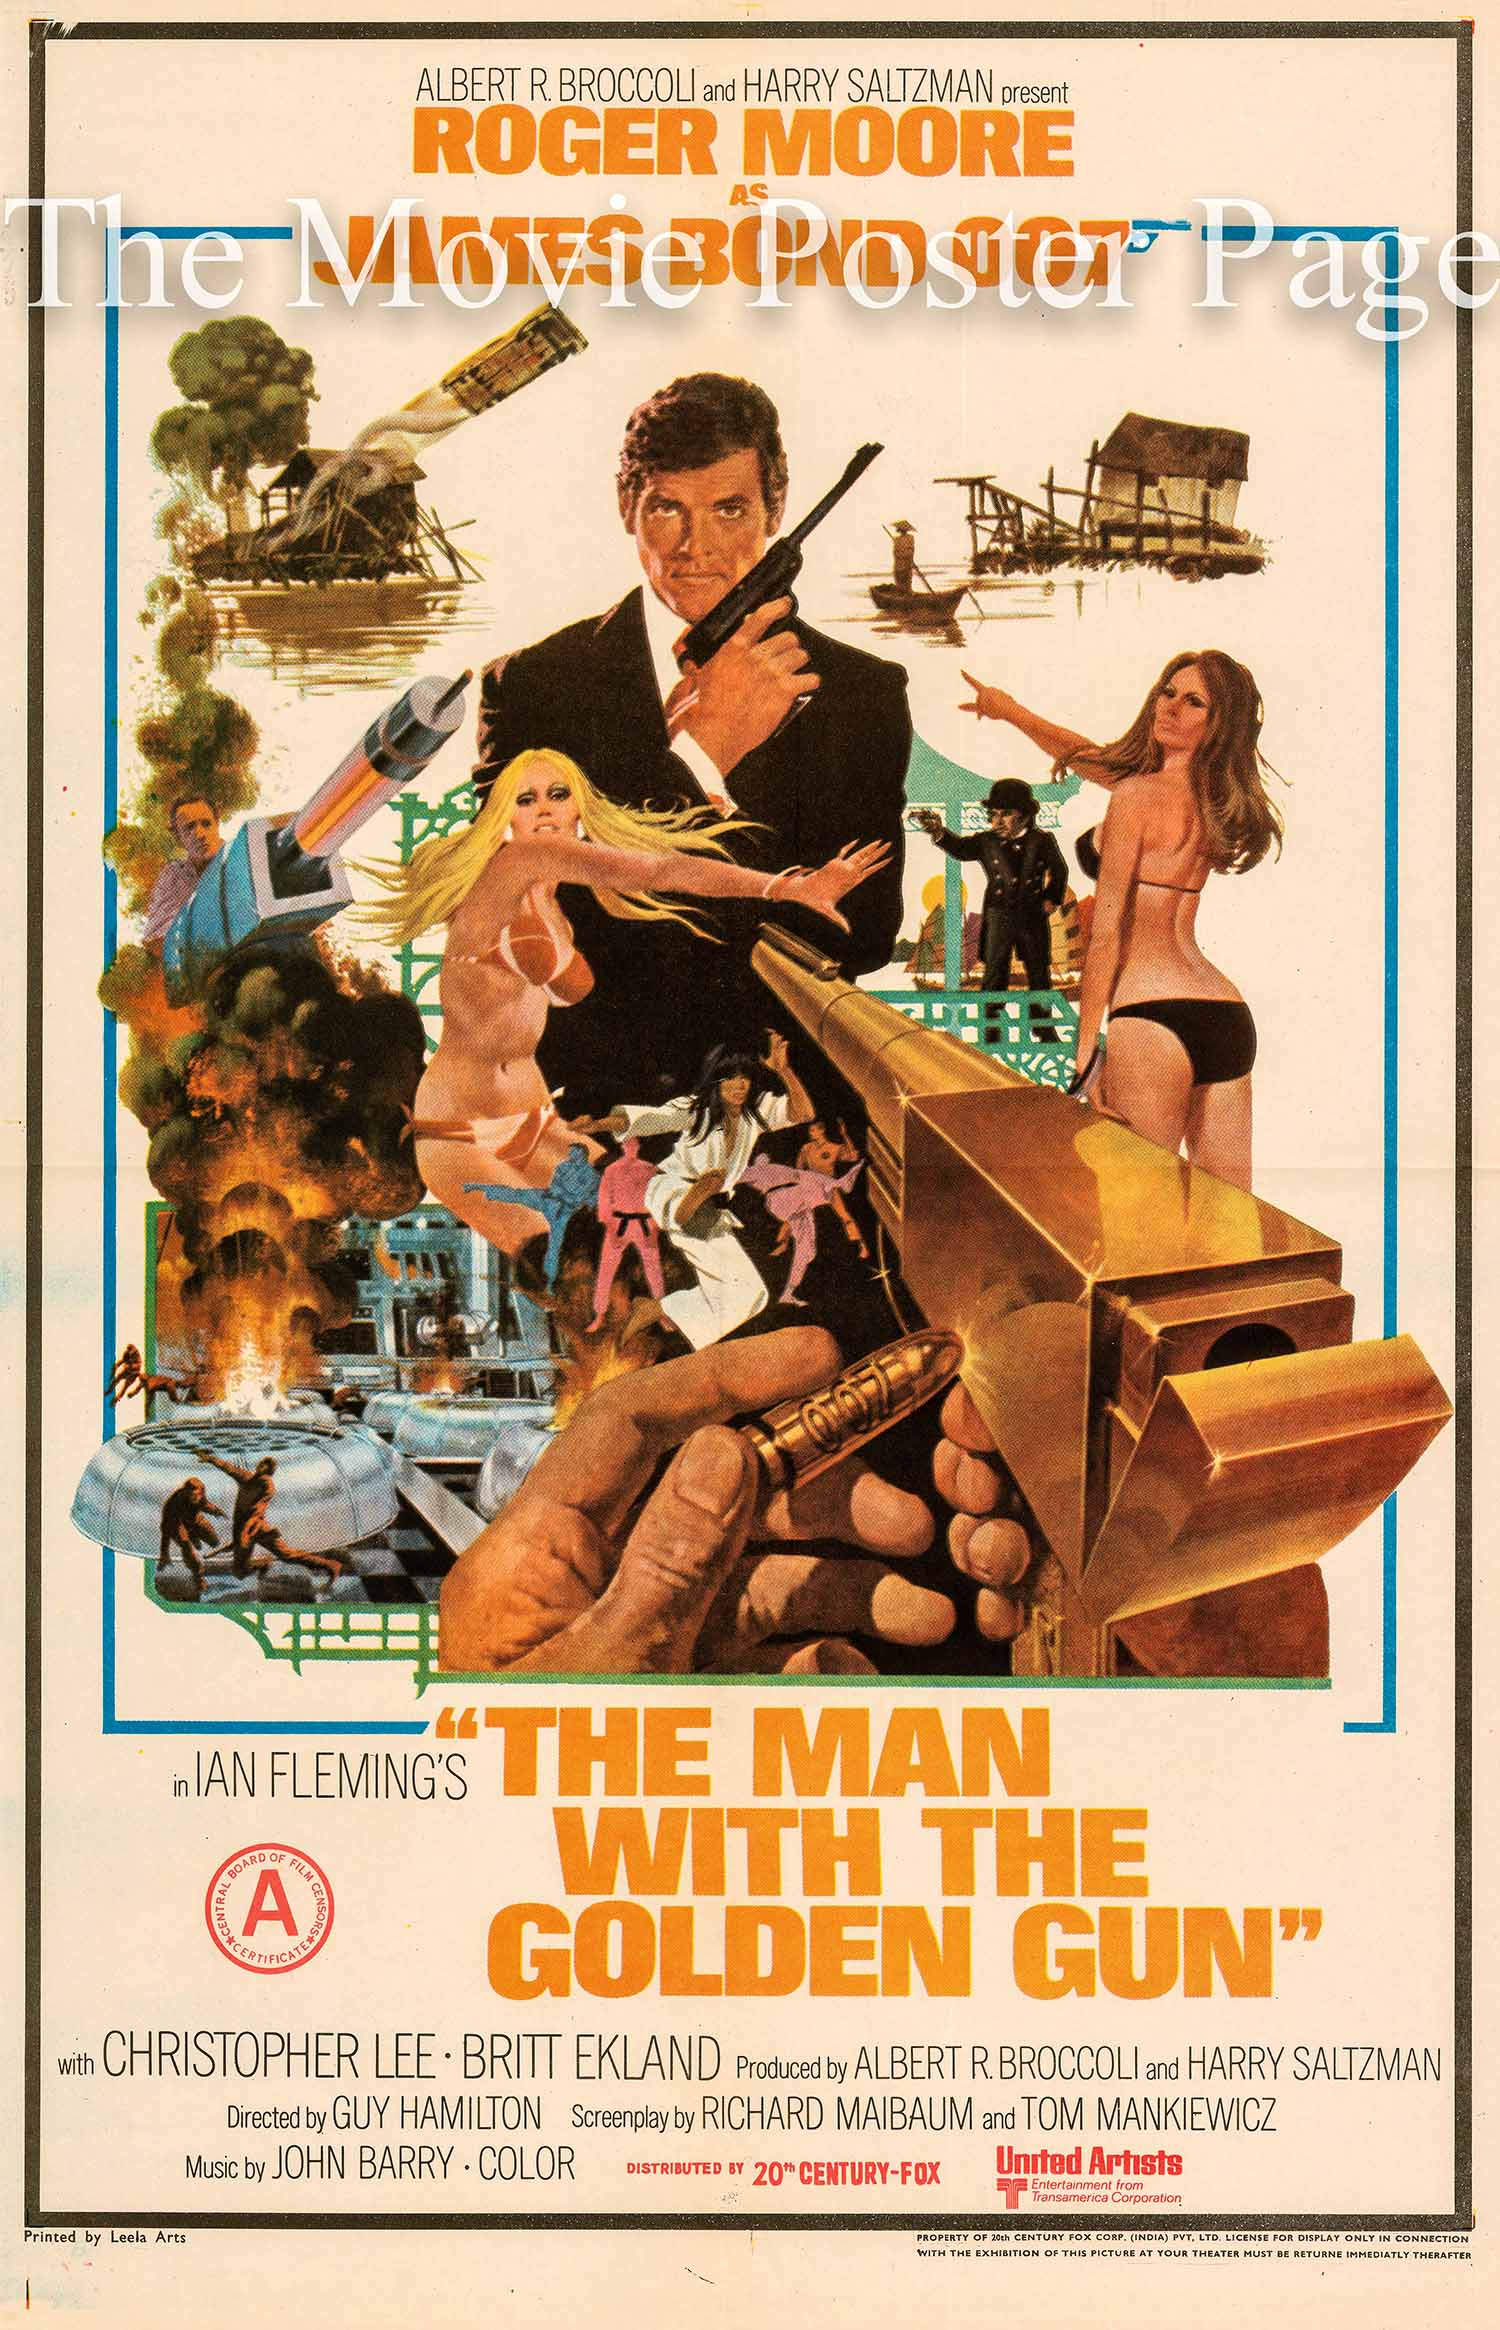 Pictured is an Indian poster made to promote the 1974 Guy Hamilton film The Man with the Golden Gun, starring Roger Moore as James Bond.